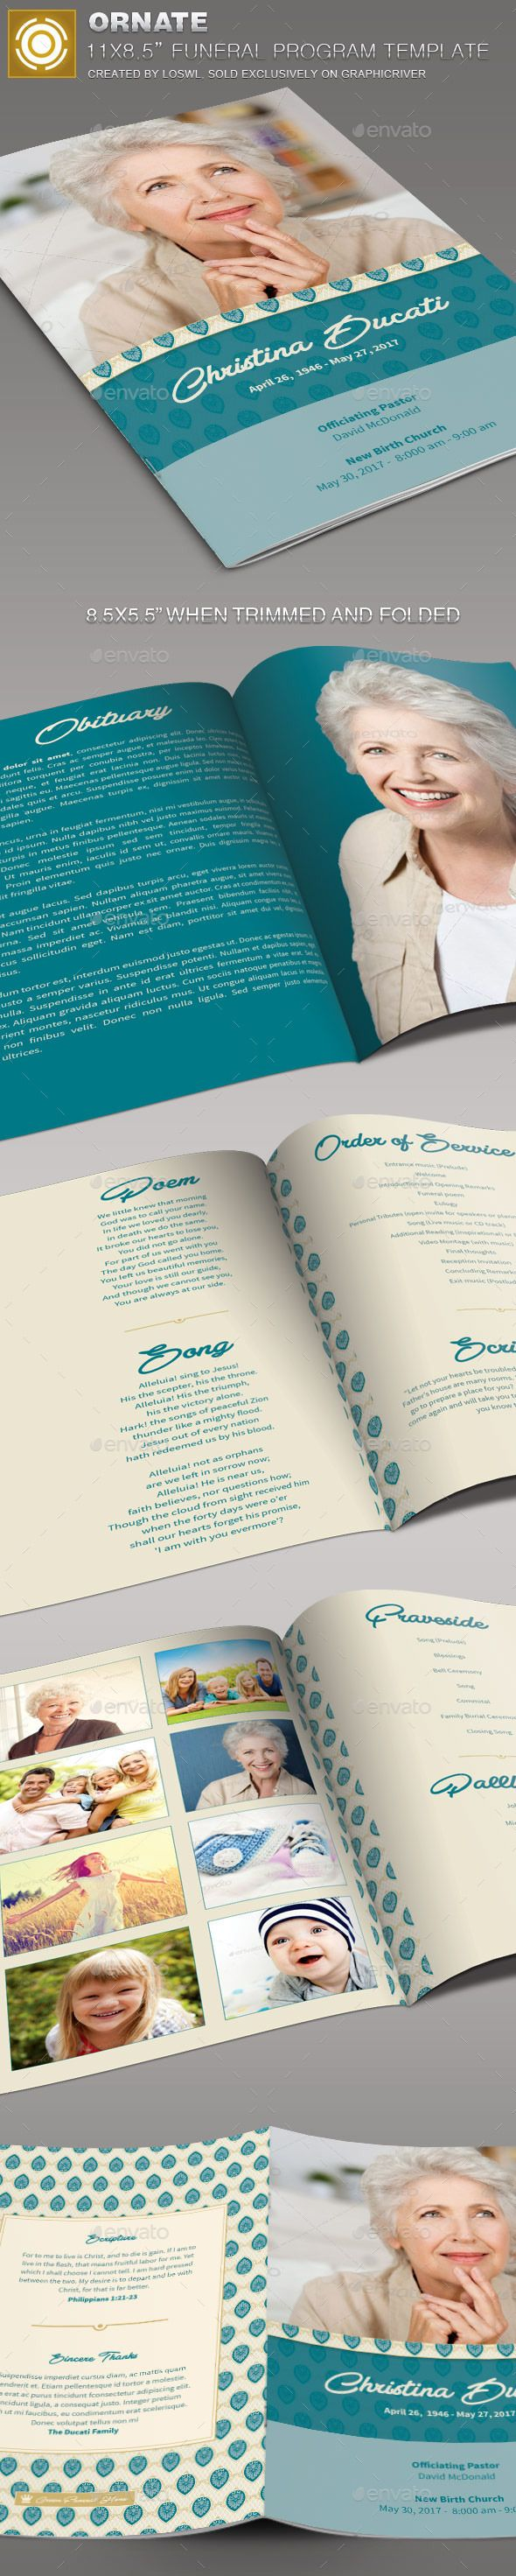 Ornate Funeral Program Template | Program template, Funeral and Template